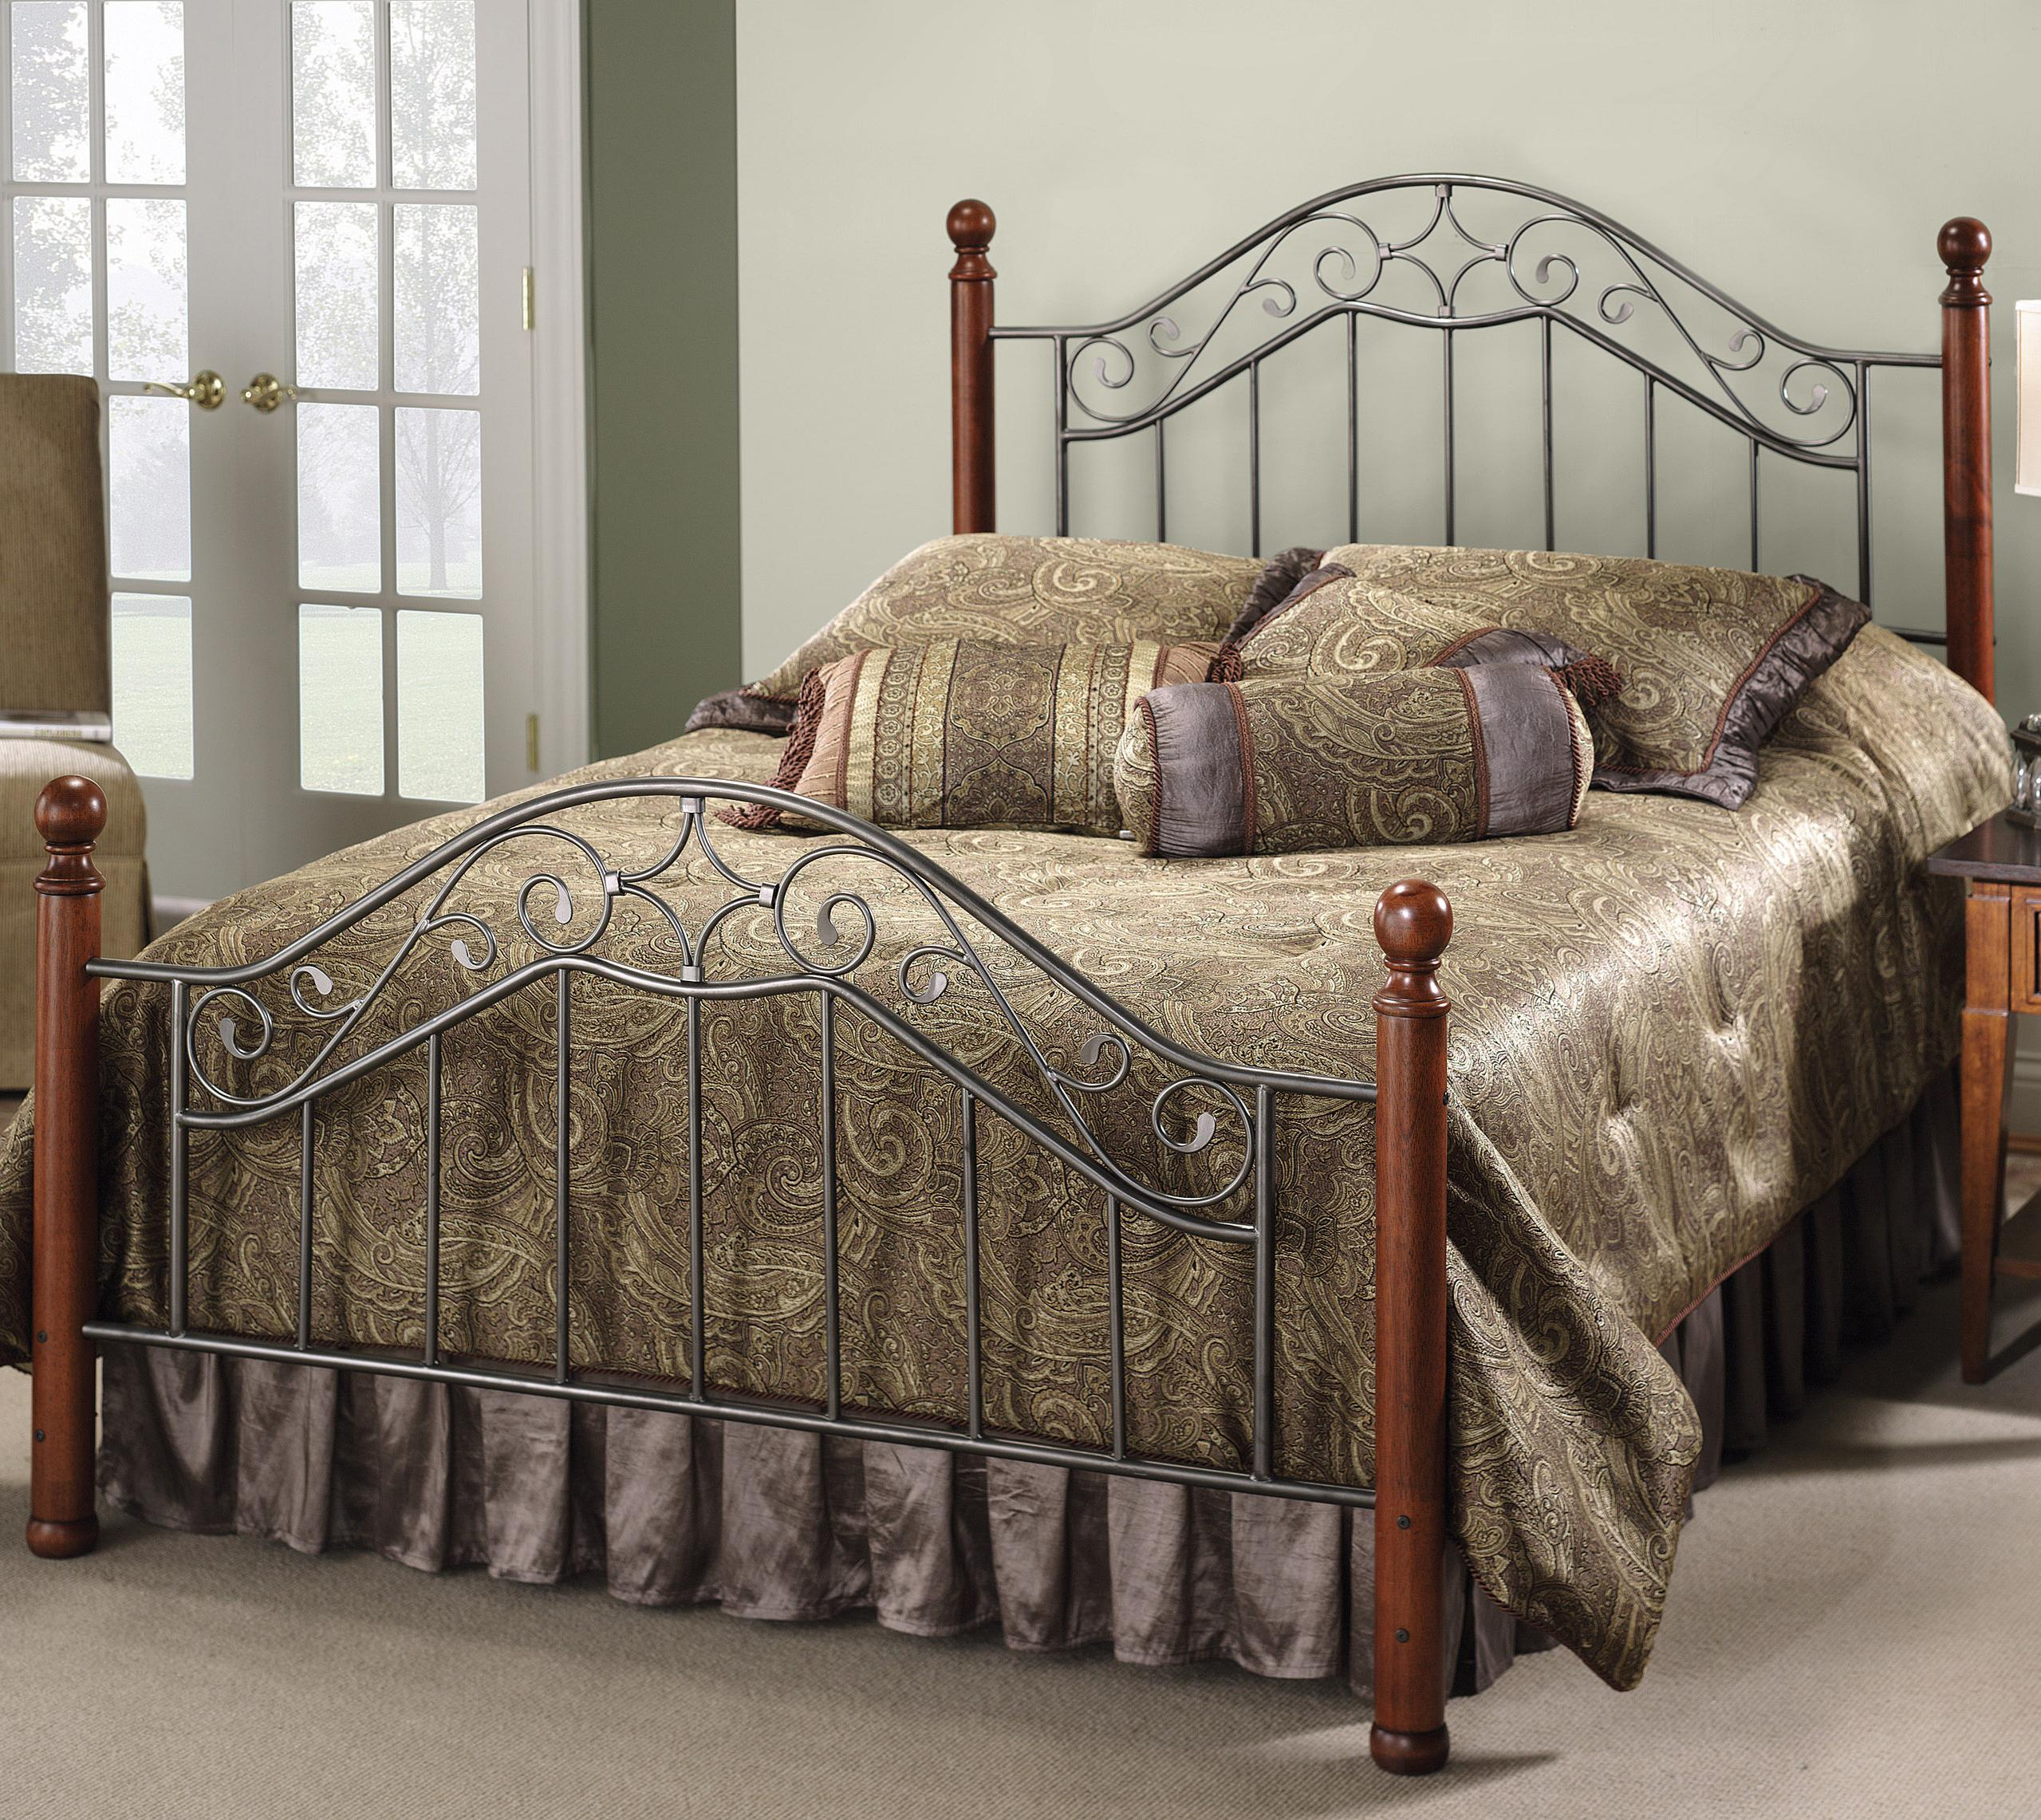 Queen Martino Bed